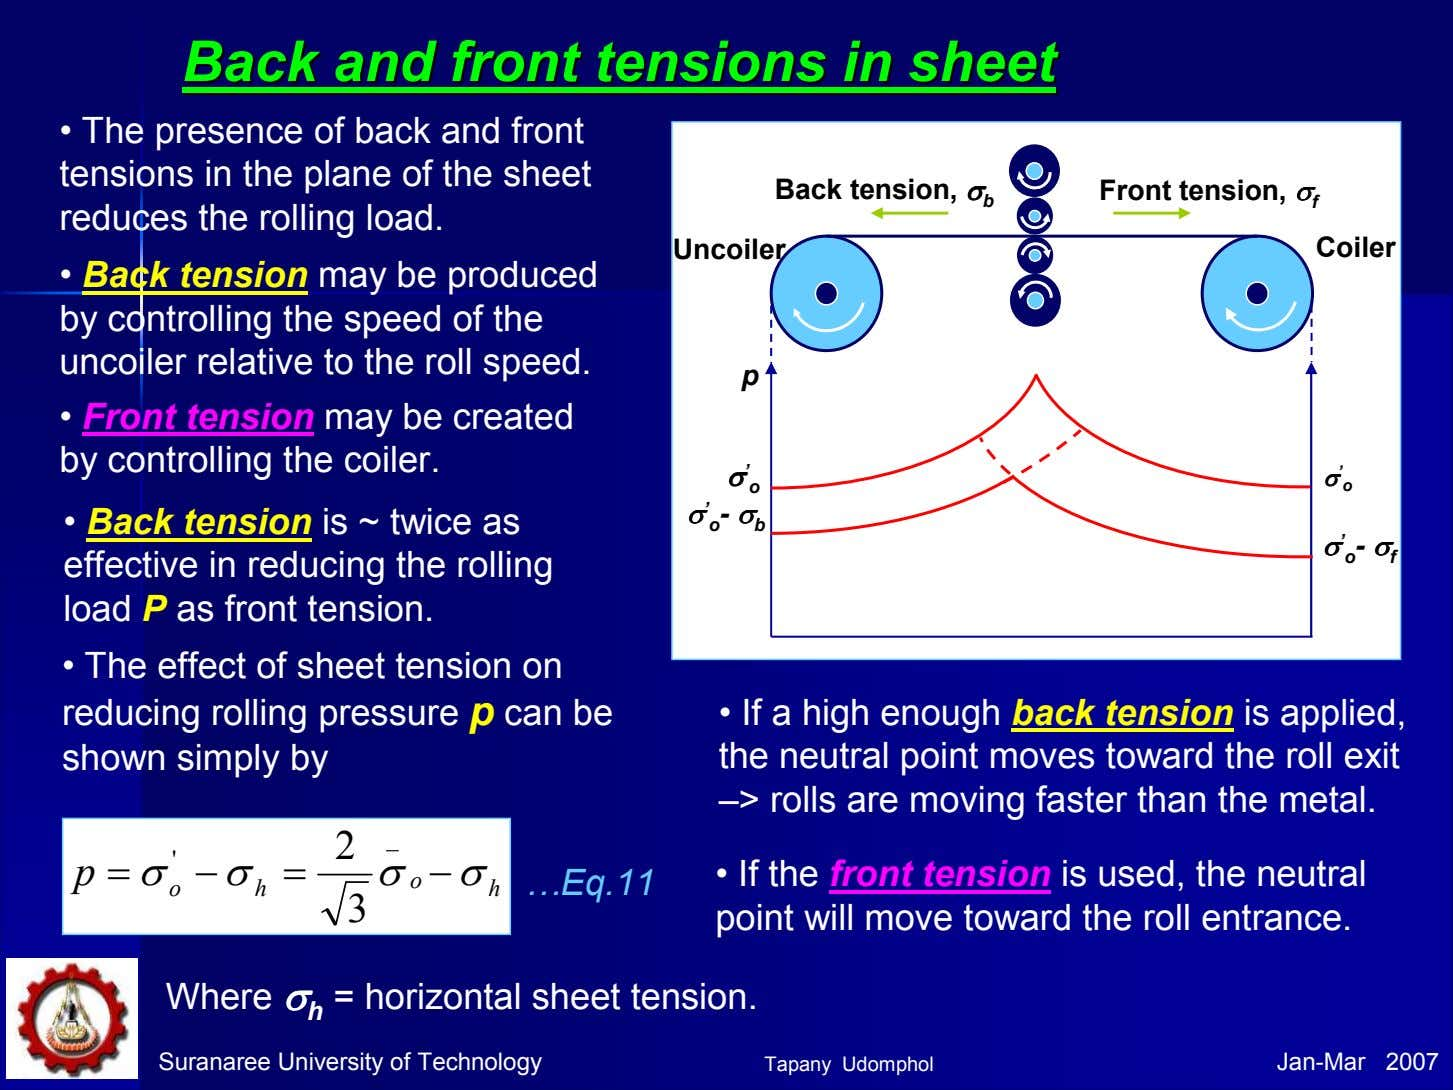 BackBack andand frontfront tensionstensions inin sheetsheet • The presence of back and front tensions in